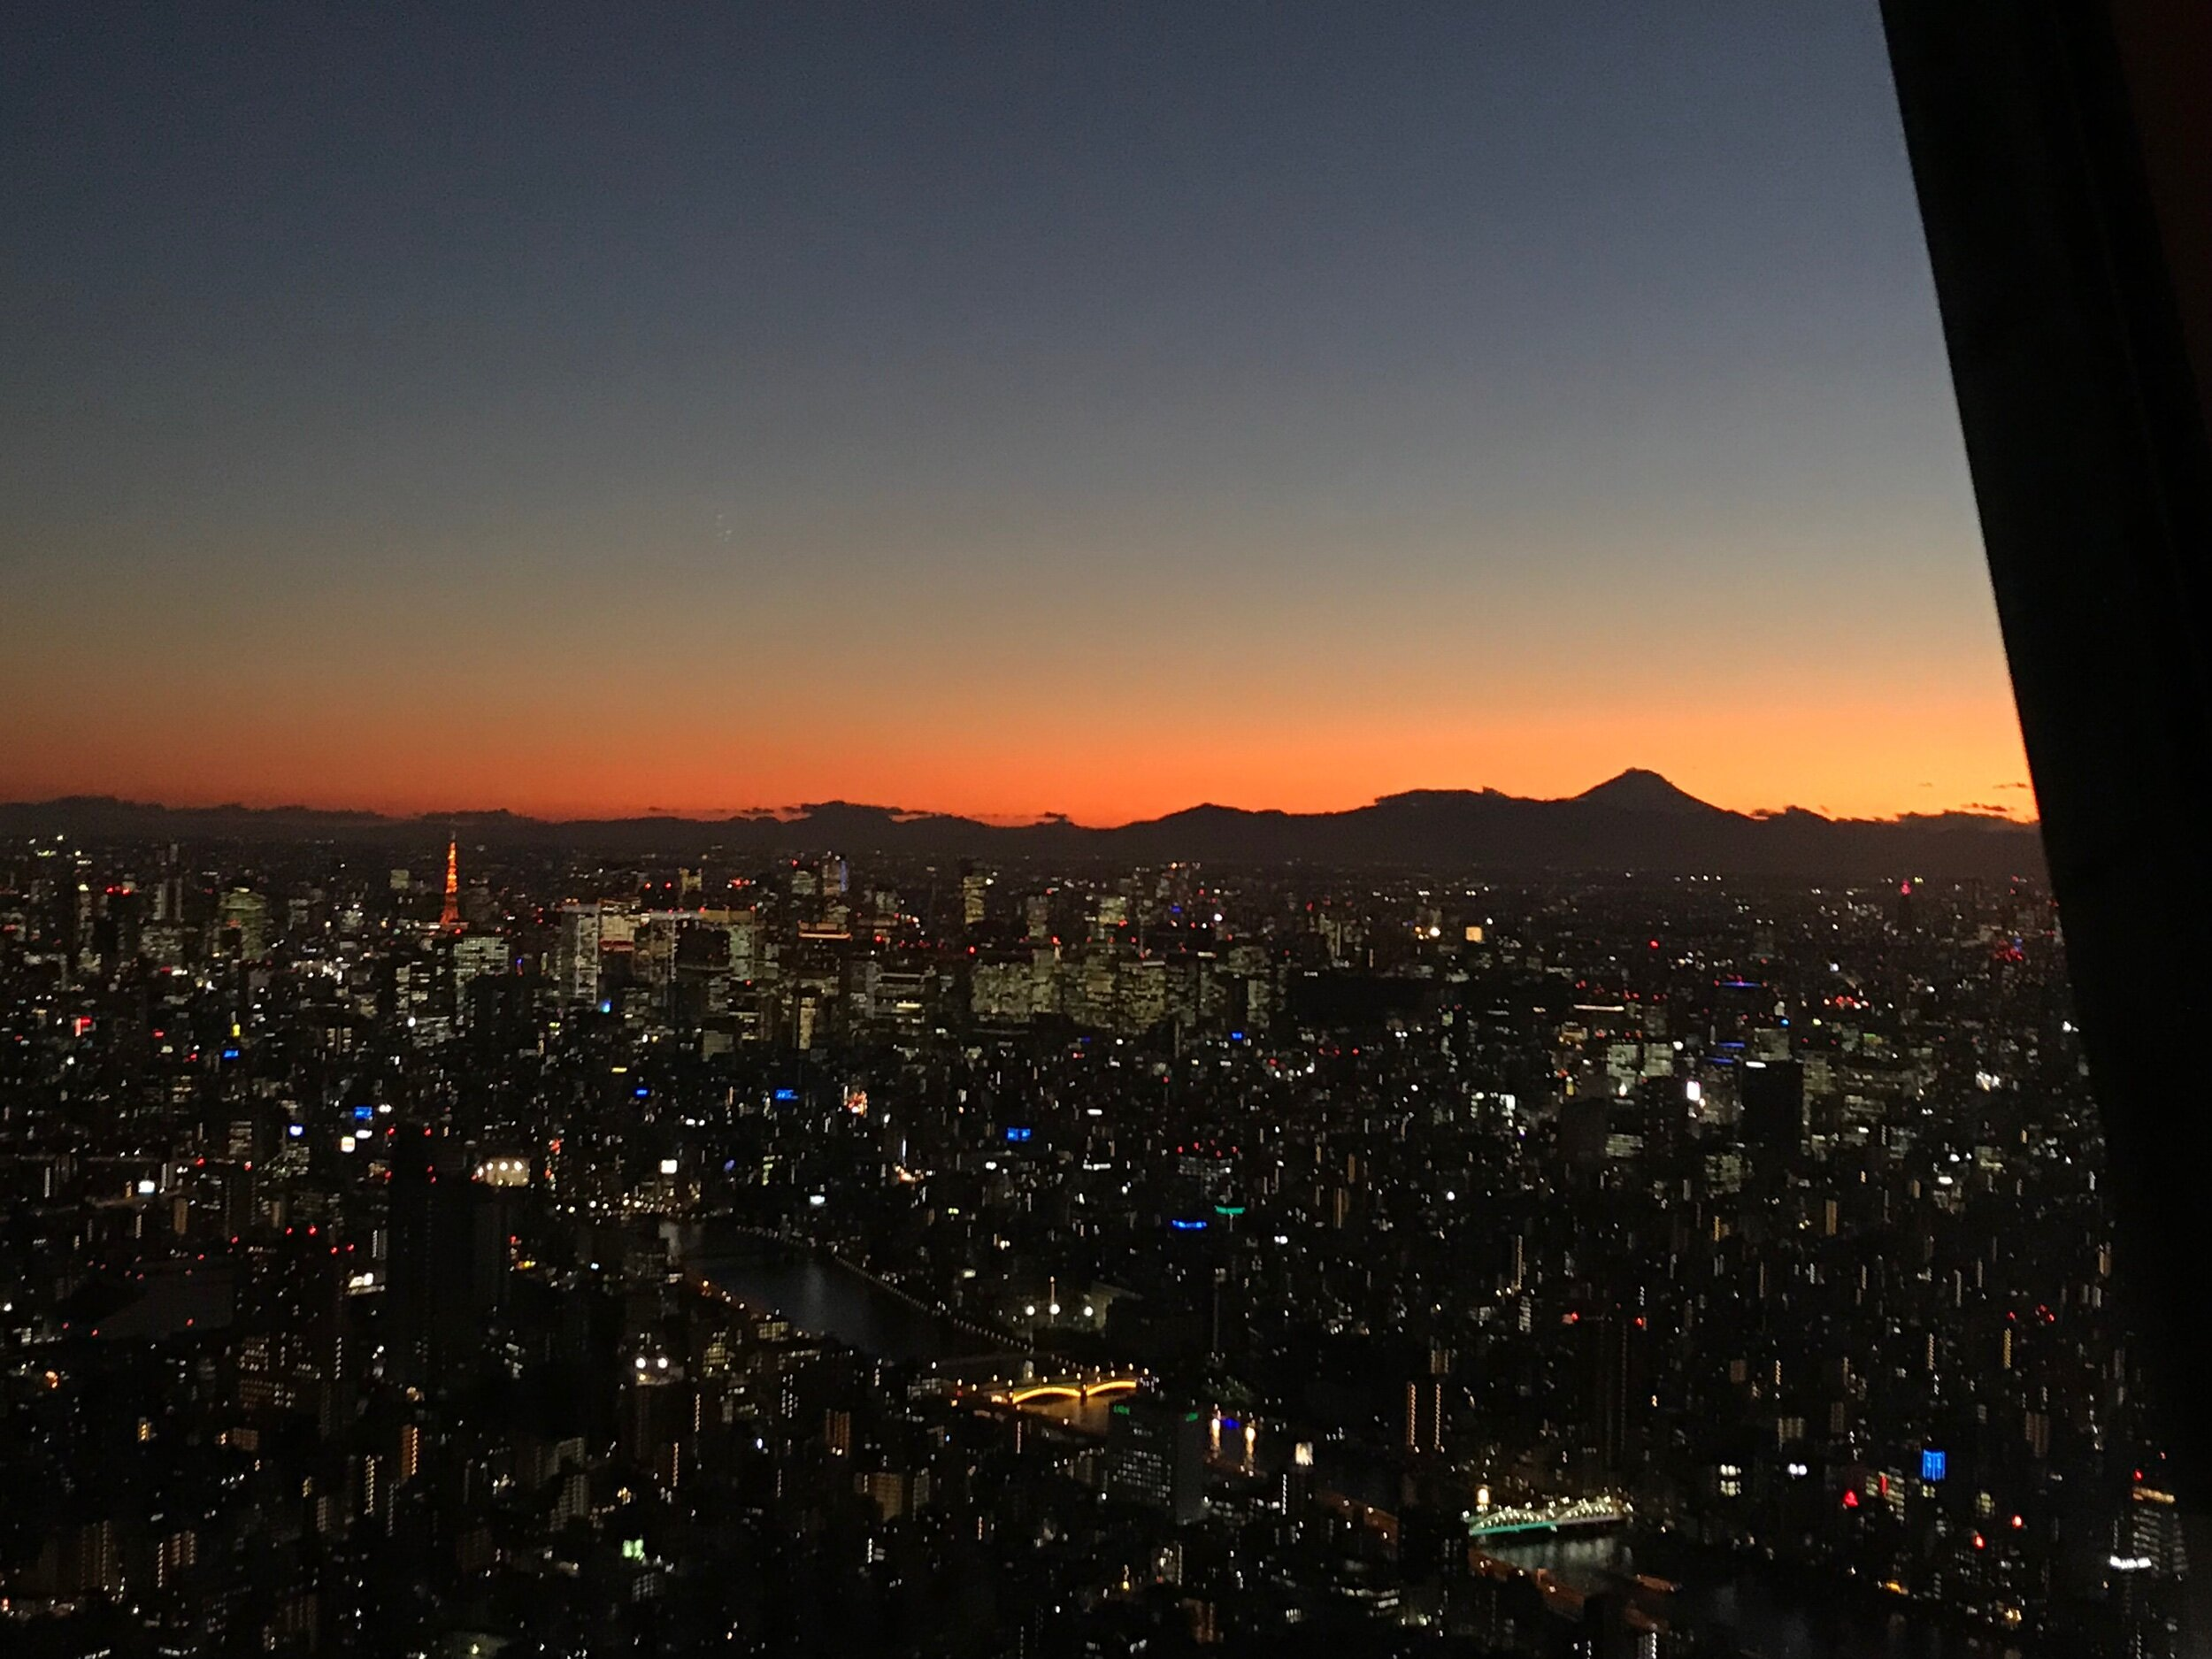 Sunset from the Tower, Fuji on the skyline.